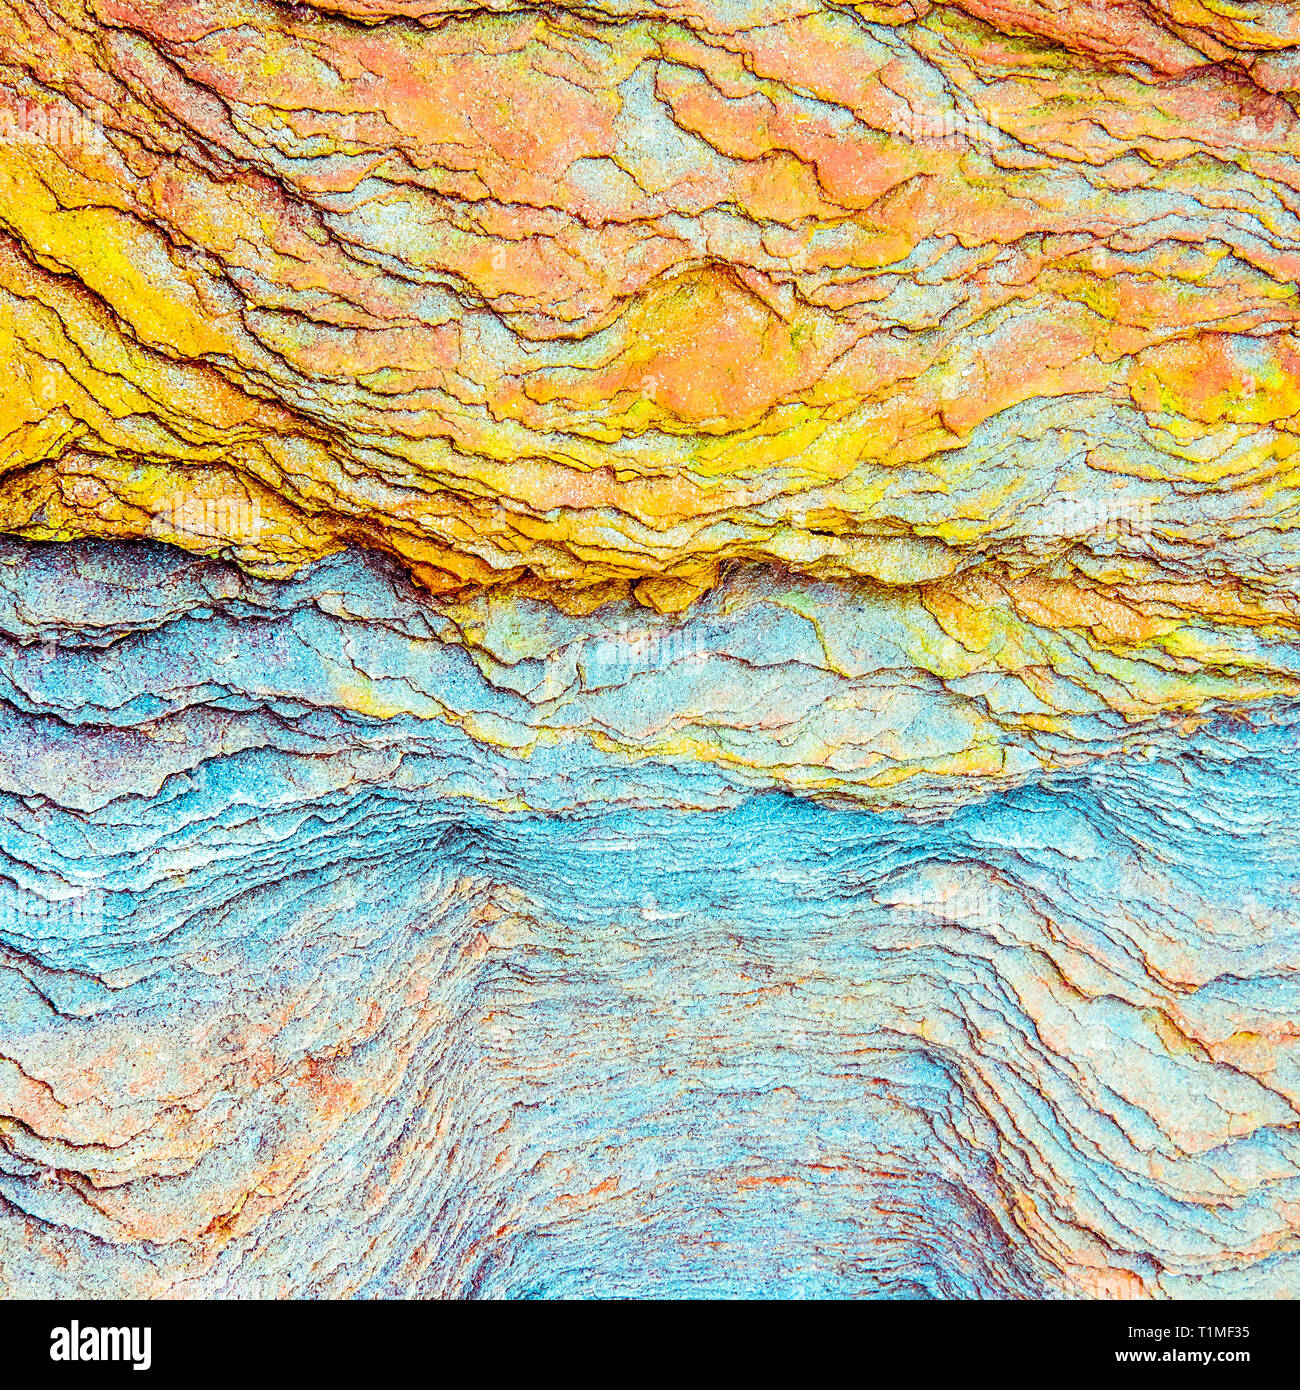 Colourful sedimentary rocks formed by the accumulation of sediments – natural rock layers backgrounds, patterns and textures - abstract graphic design - Stock Image